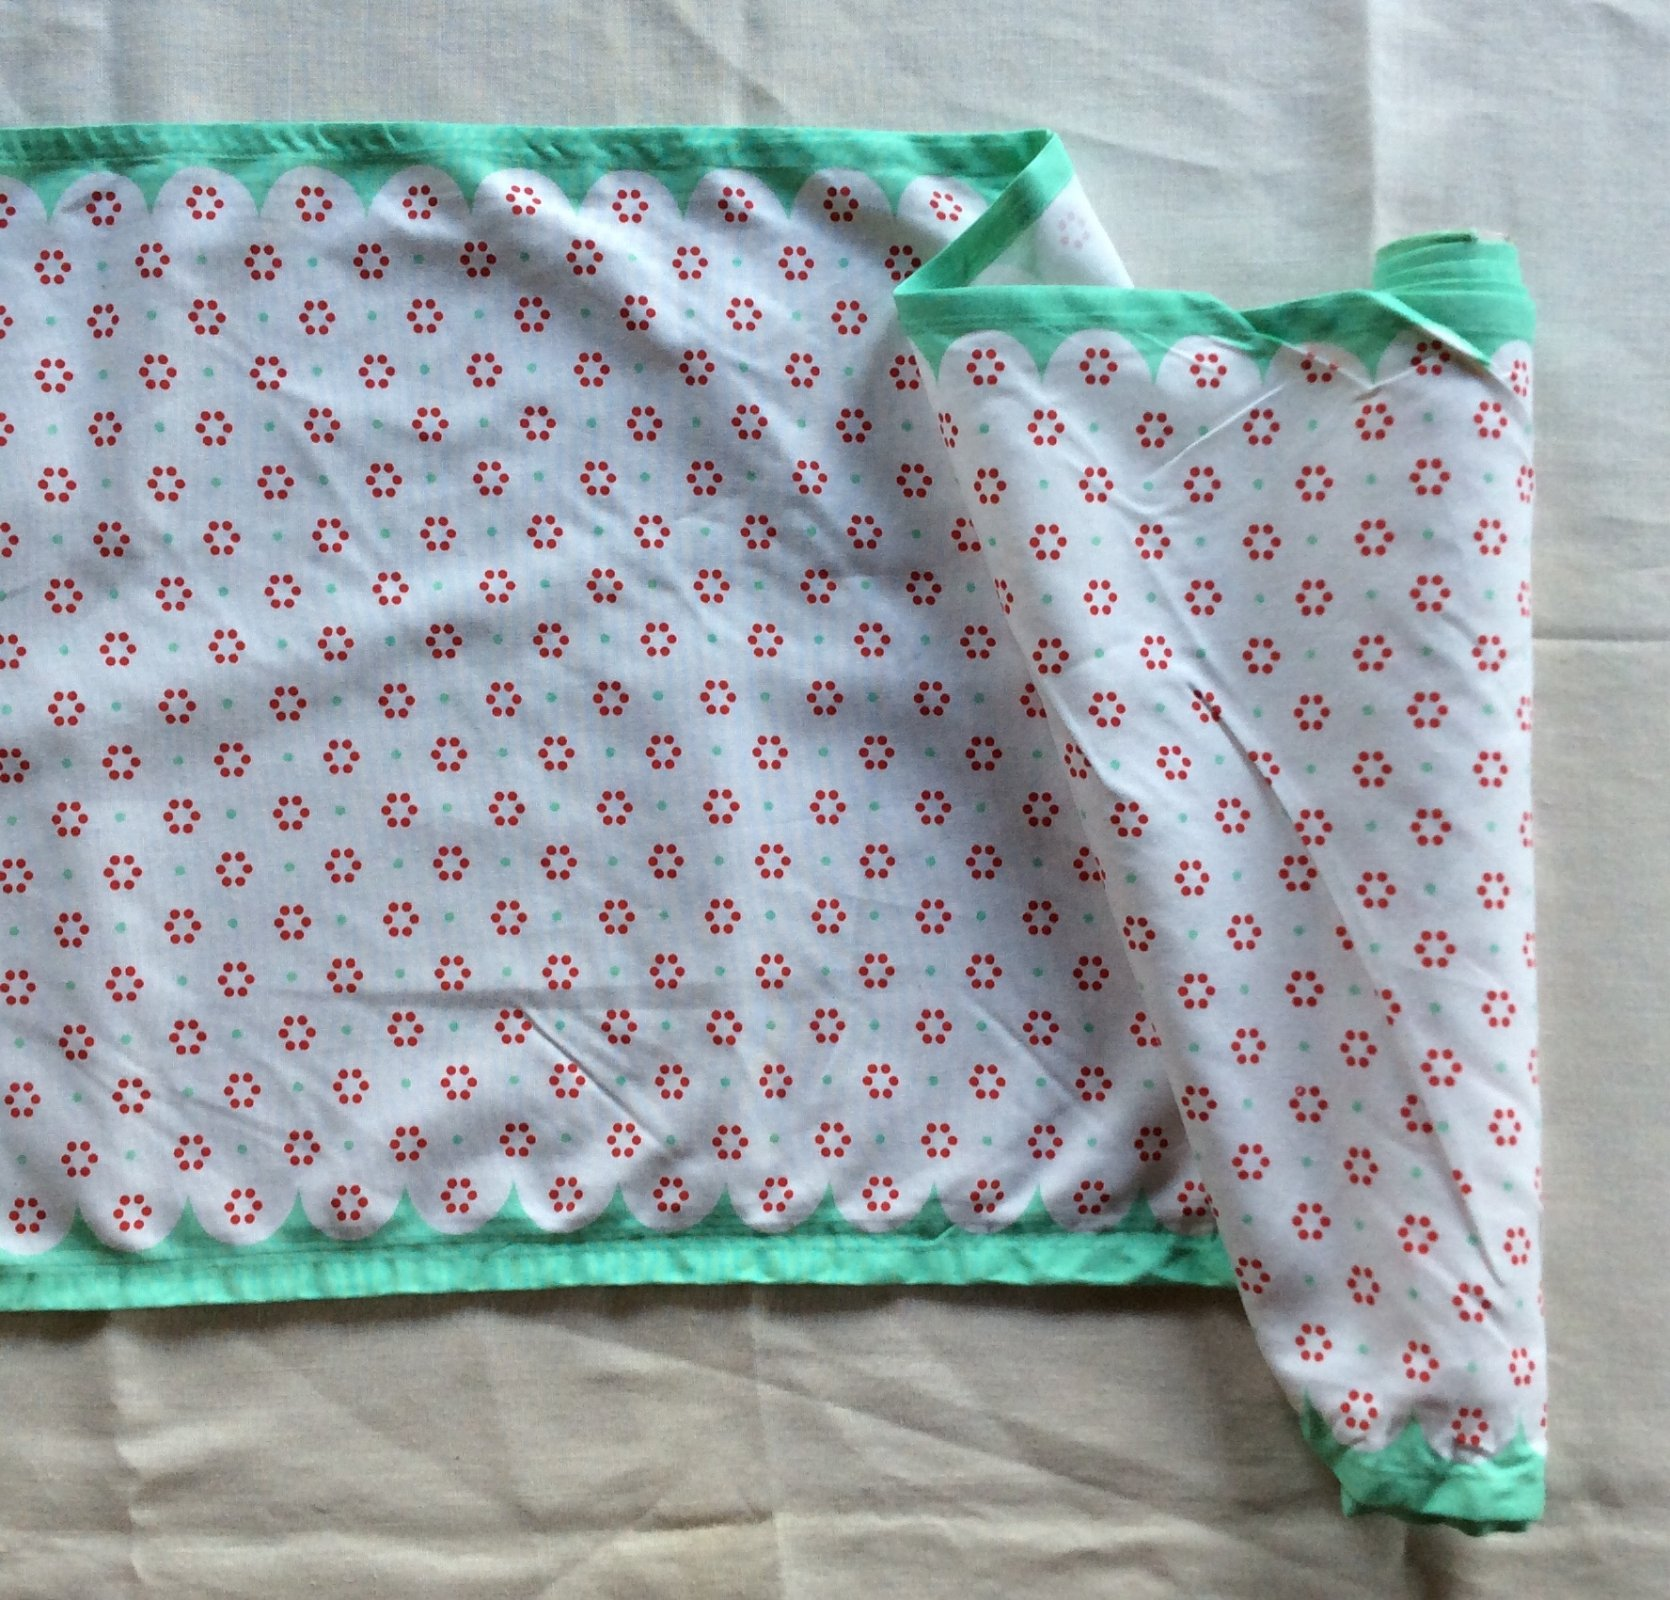 Toweling by the Yard Retro Fifties Style Polka Dot  Cotton Toweling MOT09